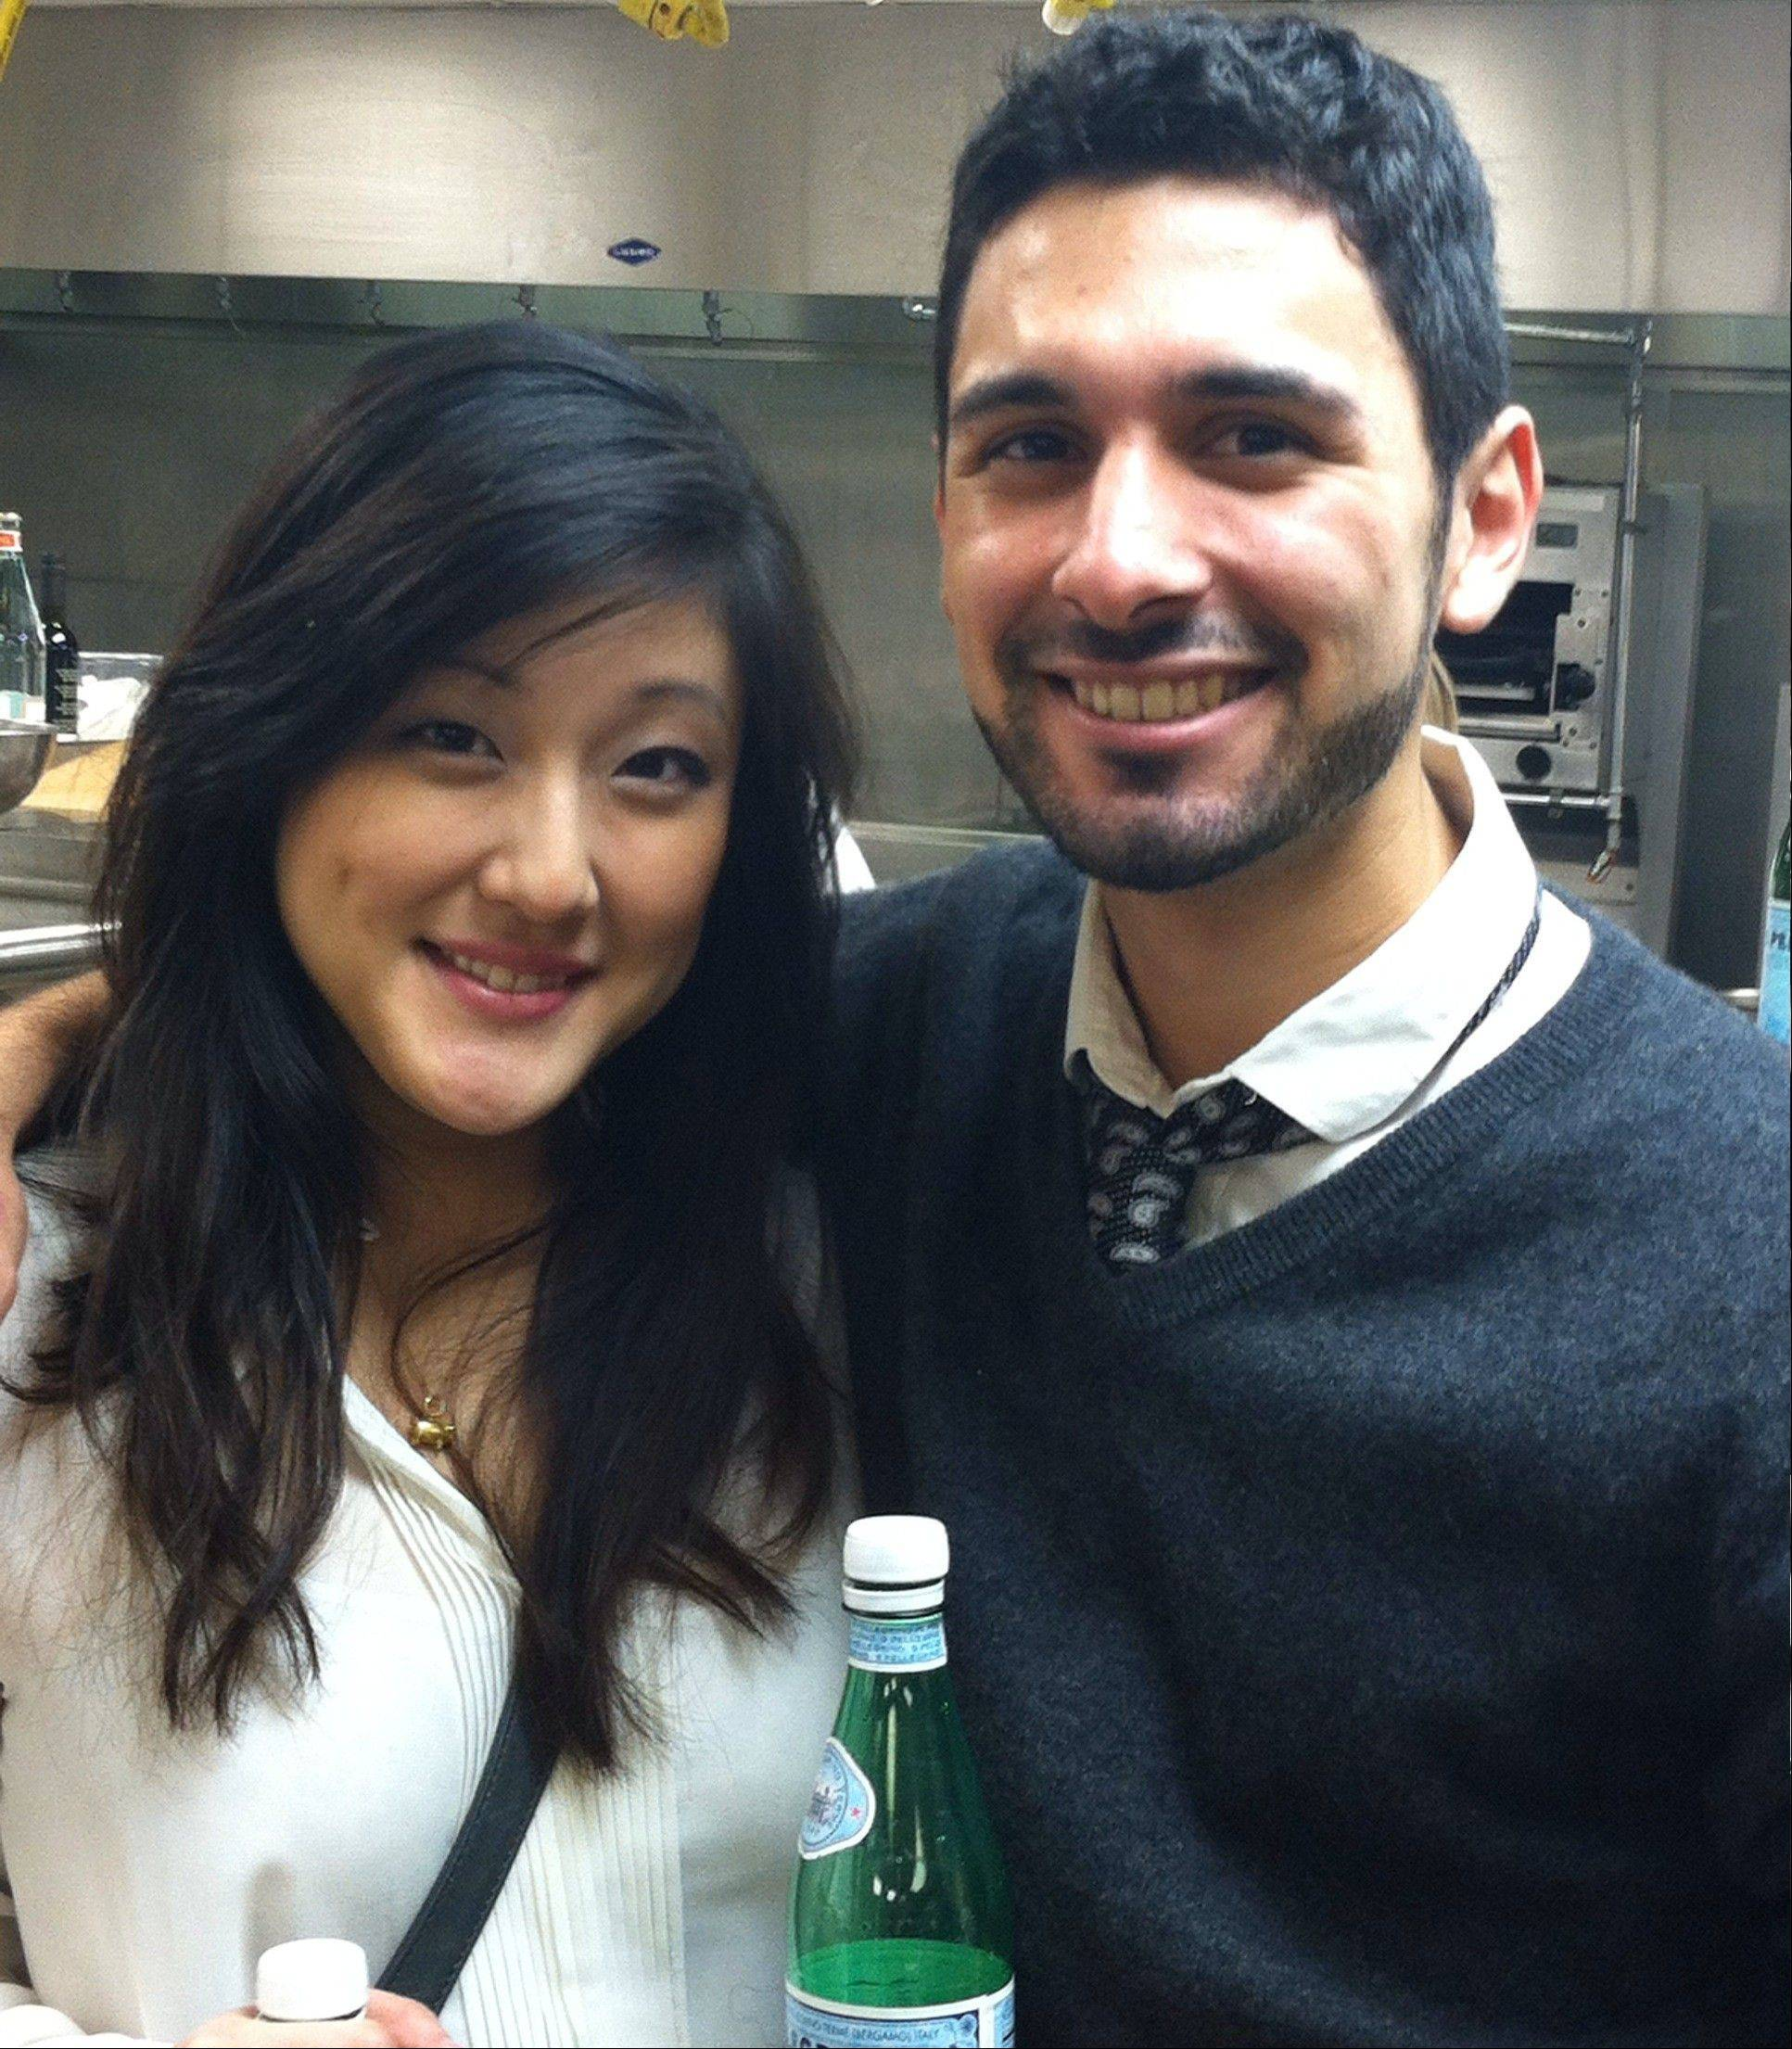 Jennifer Kim and Marco Bahena are past winners of the S. Pellegrino Almost Famous Chef competition.